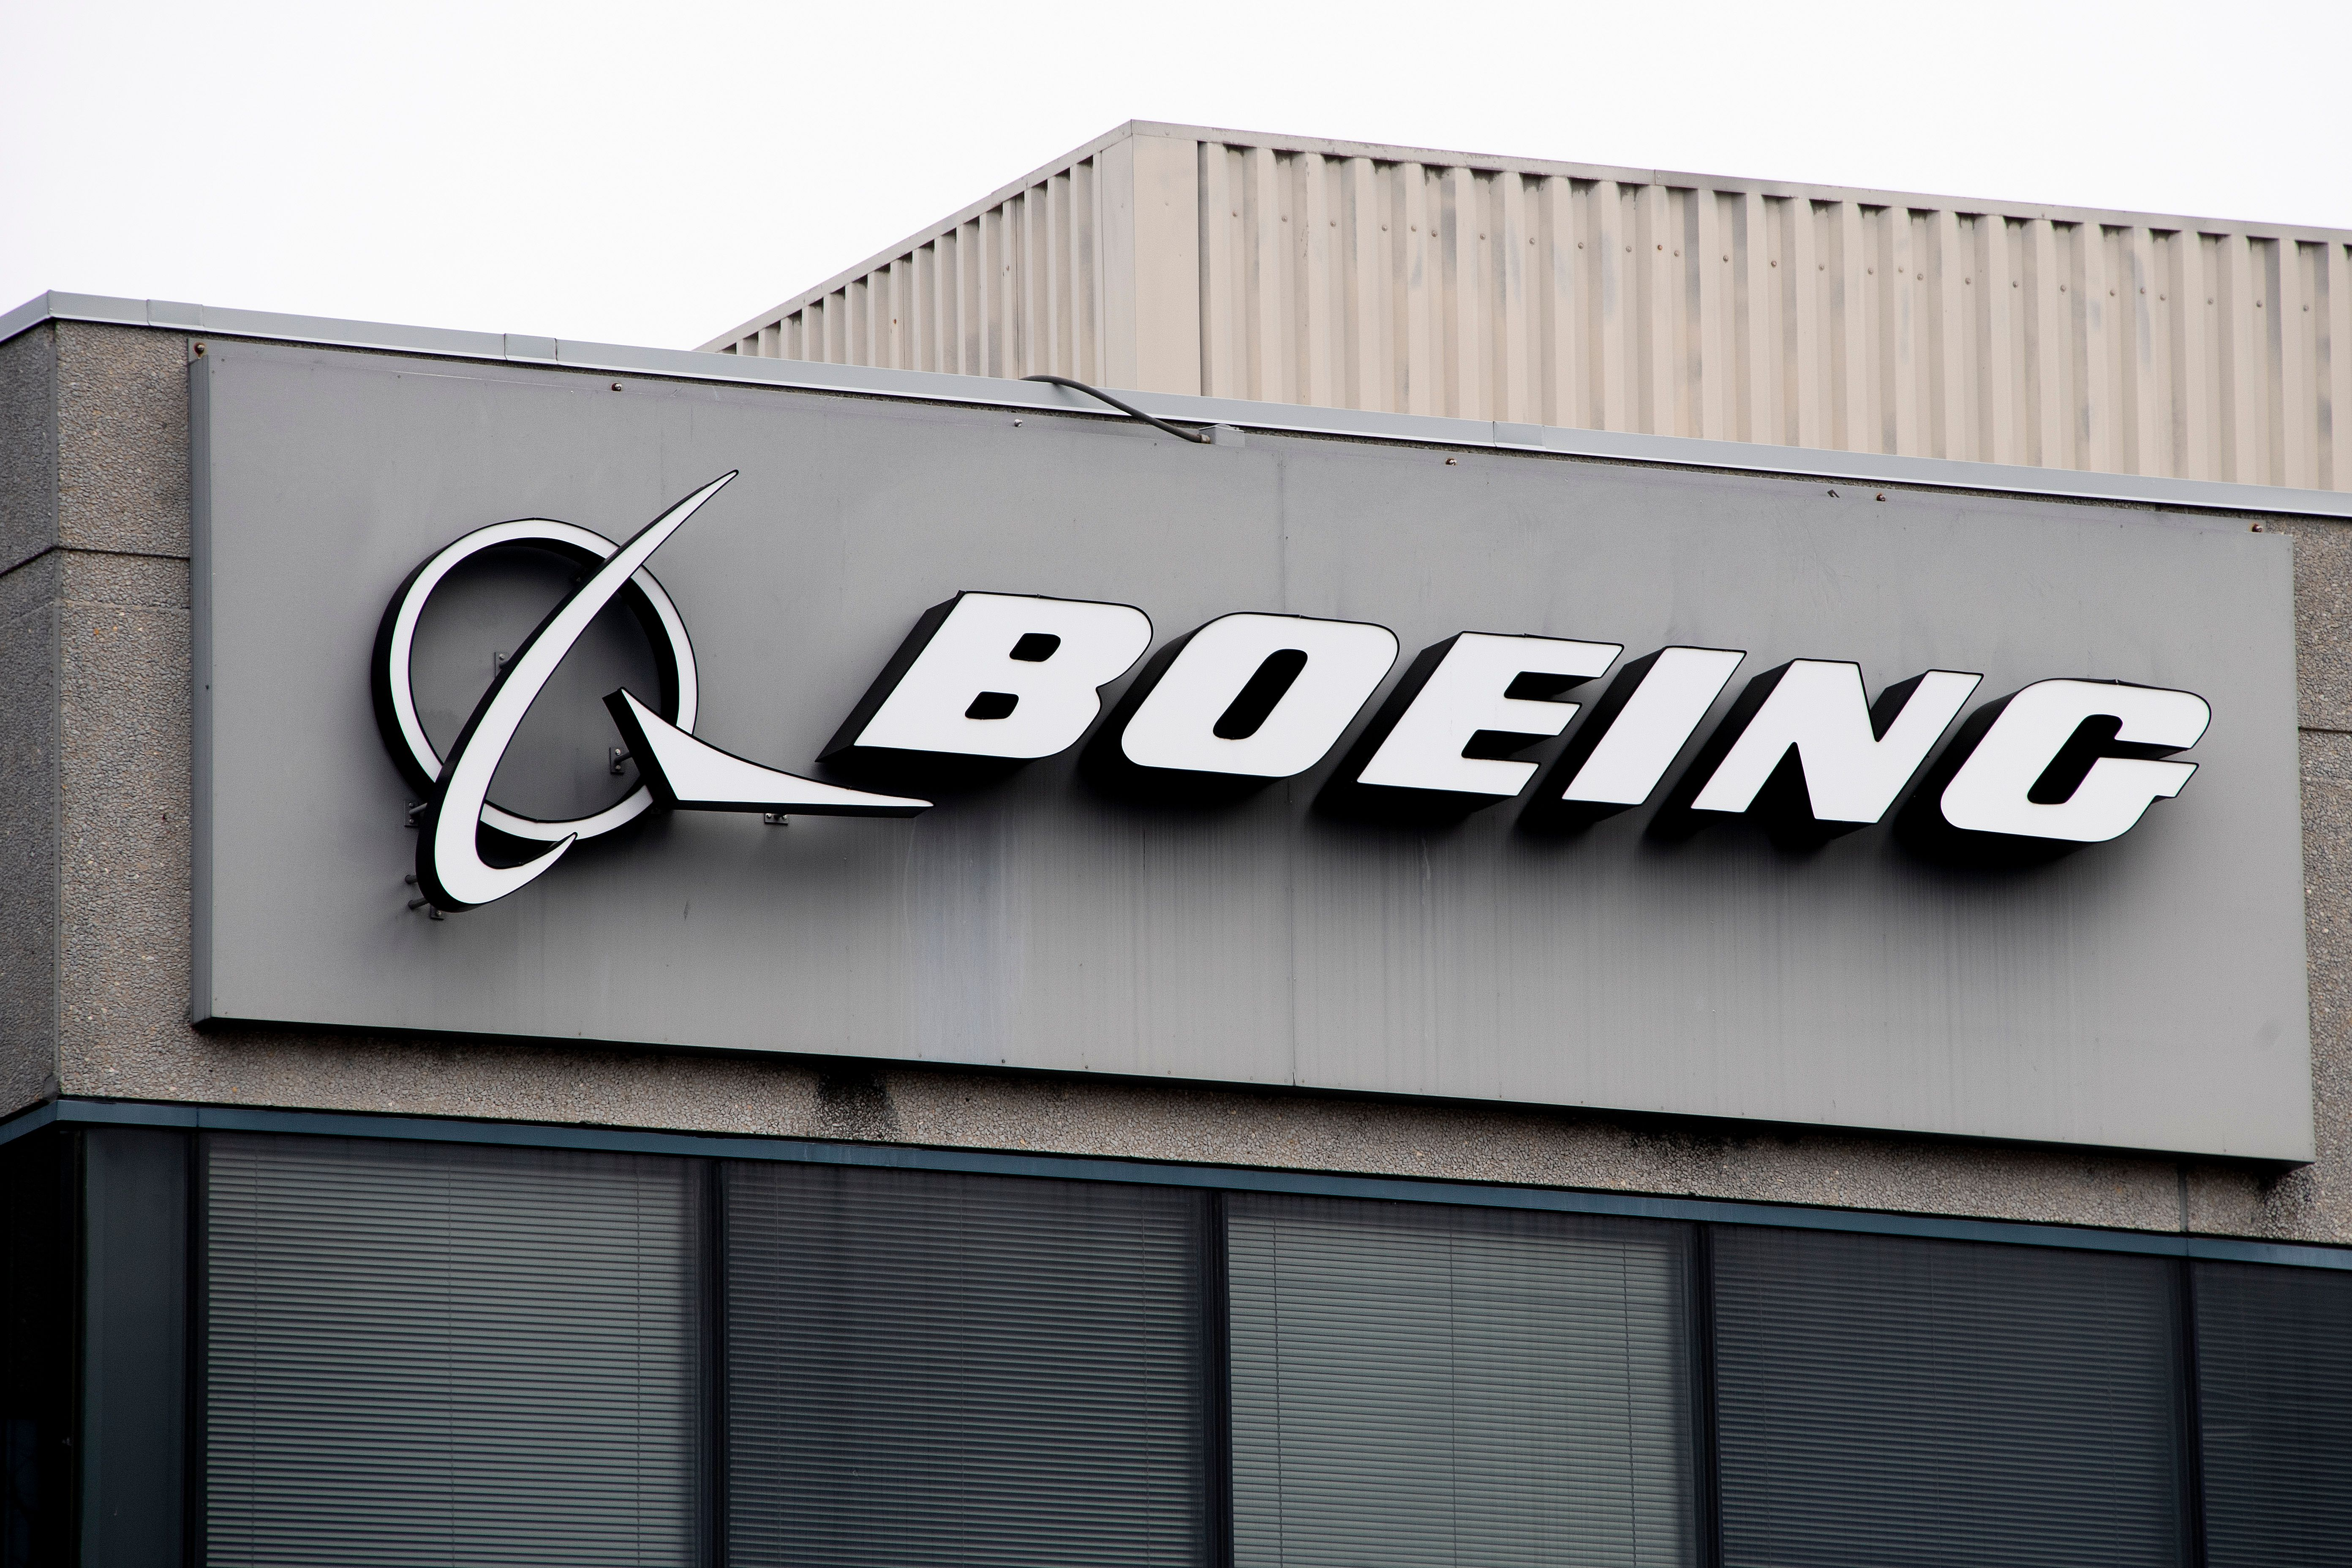 The Boeing Company logo is seen on a building in Annapolis Junction, Maryland, on March 11, 2019. (JIM WATSON/AFP/Getty Images)